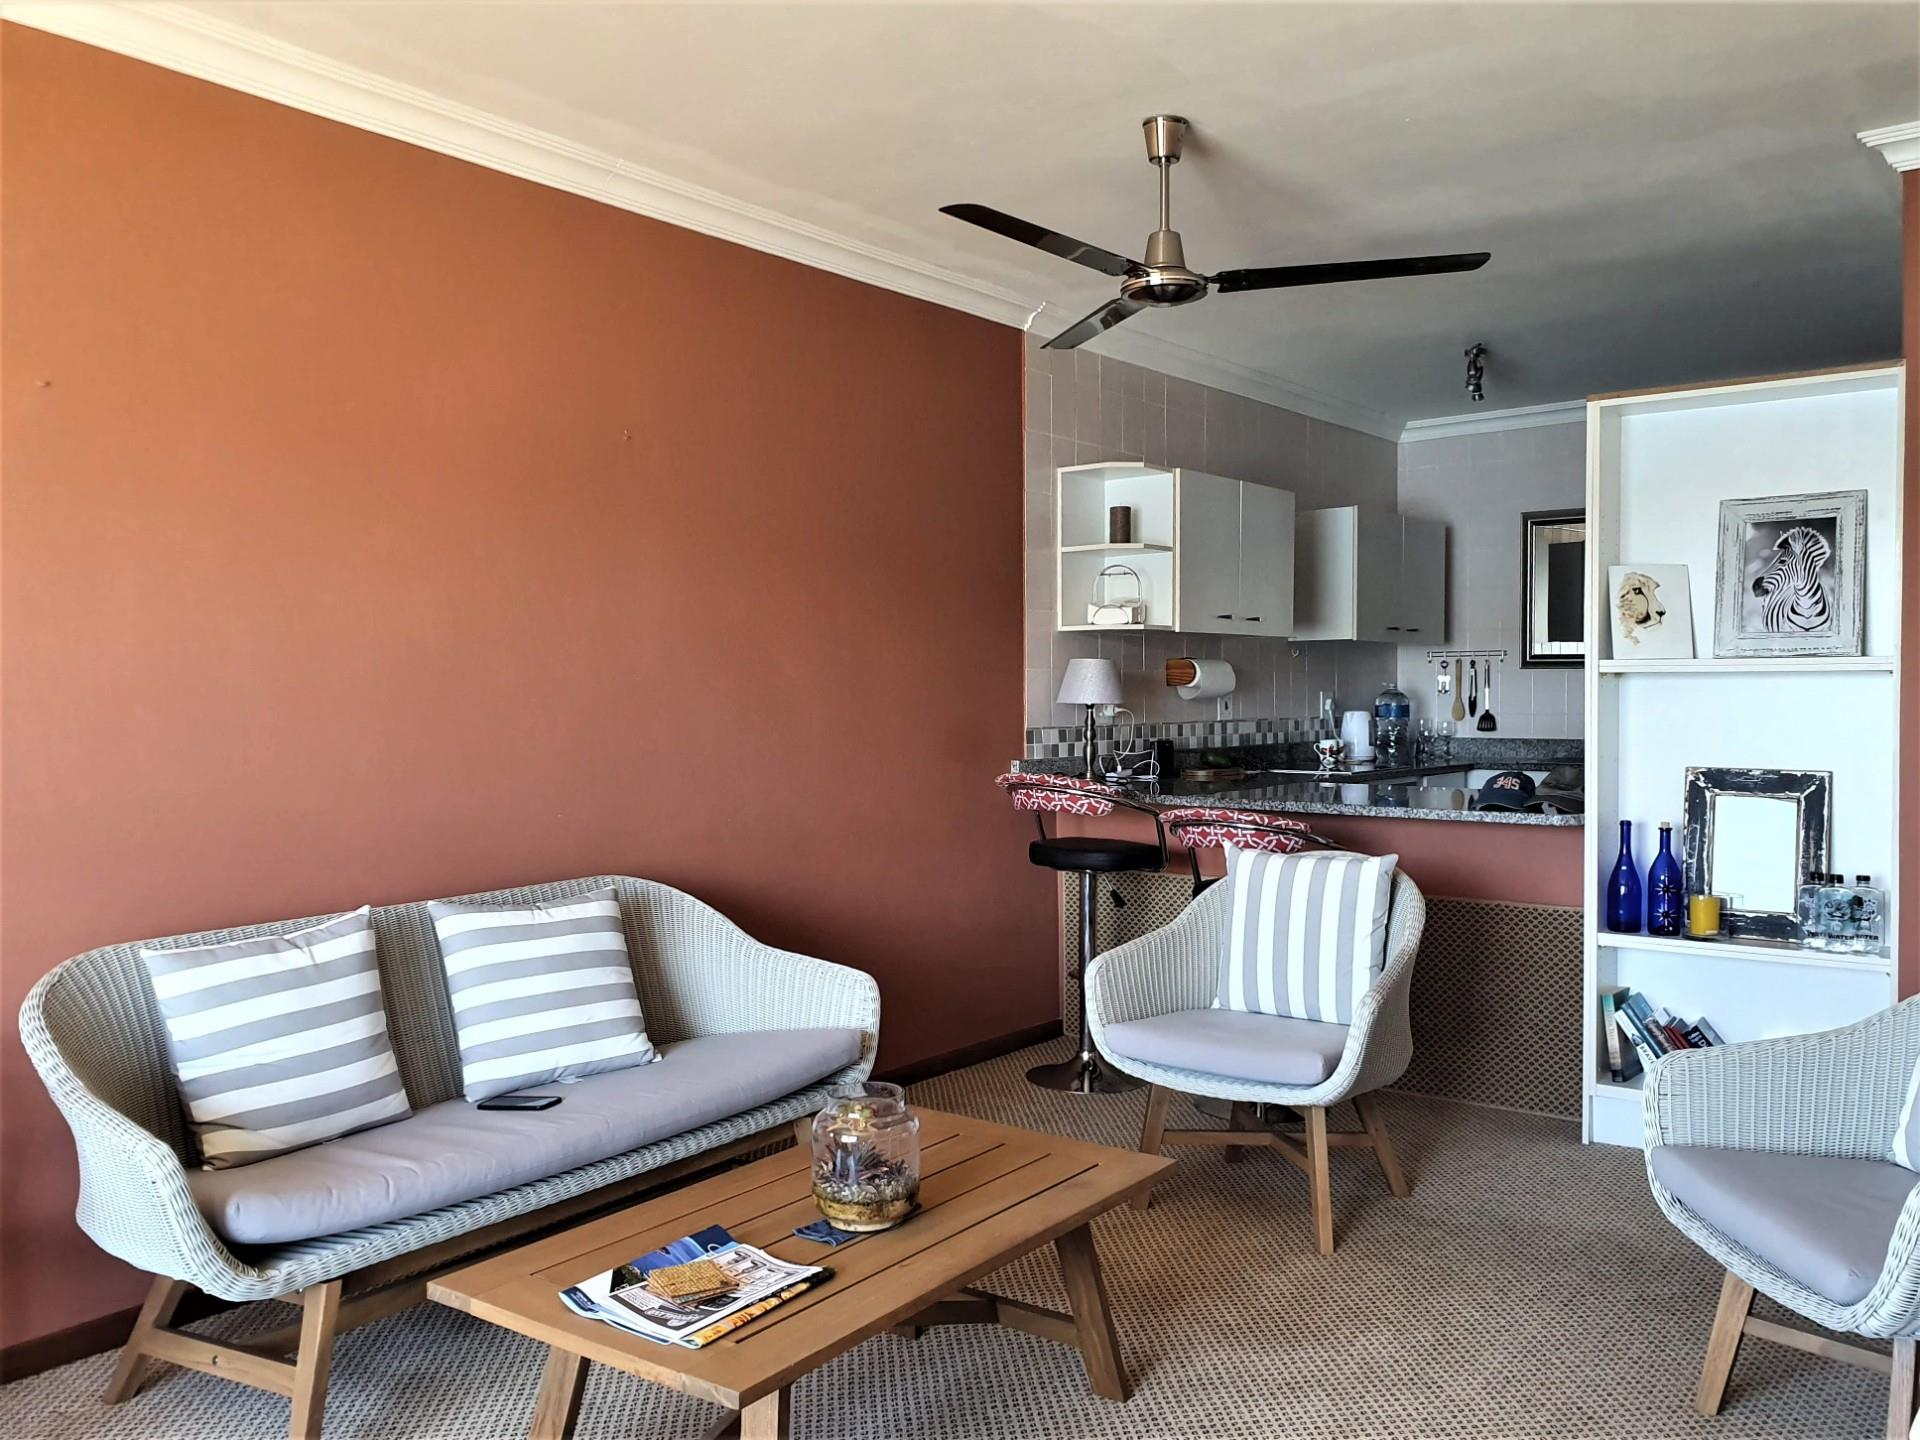 3 Bedroom Apartment For Sale in Knysna Central